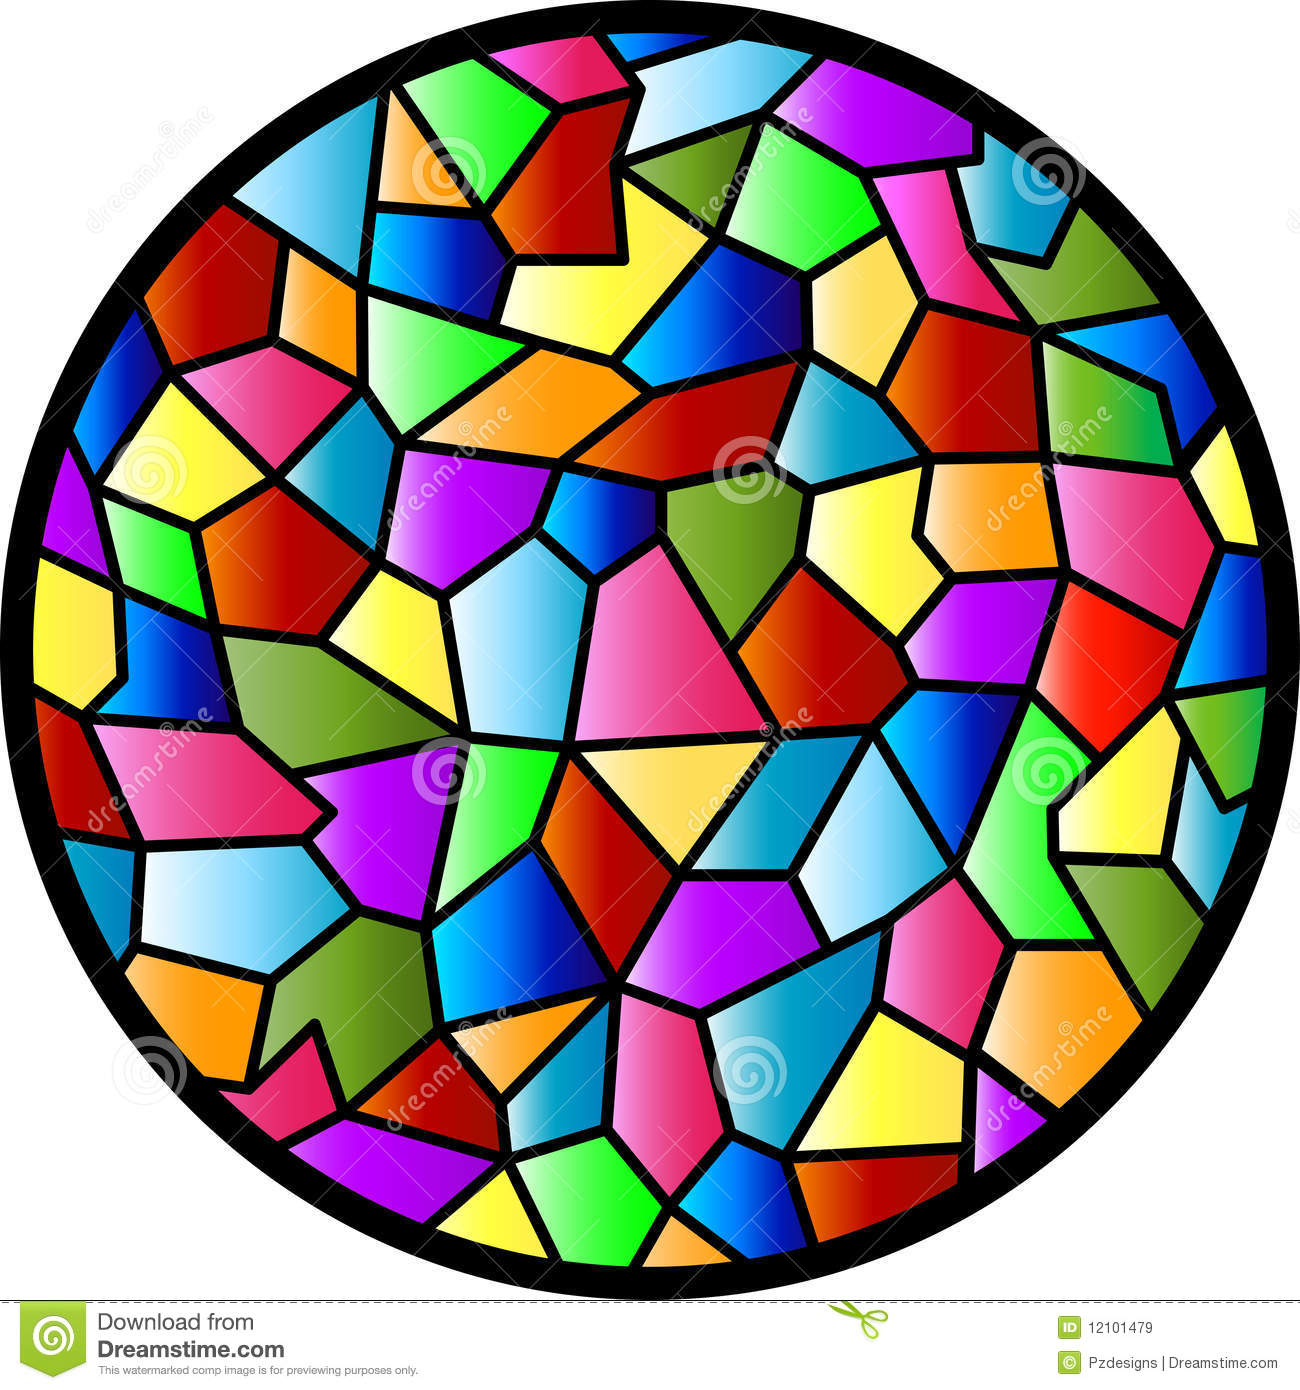 Stained Glass Circular Window Stock Illustrations 112 Vectors Clipart